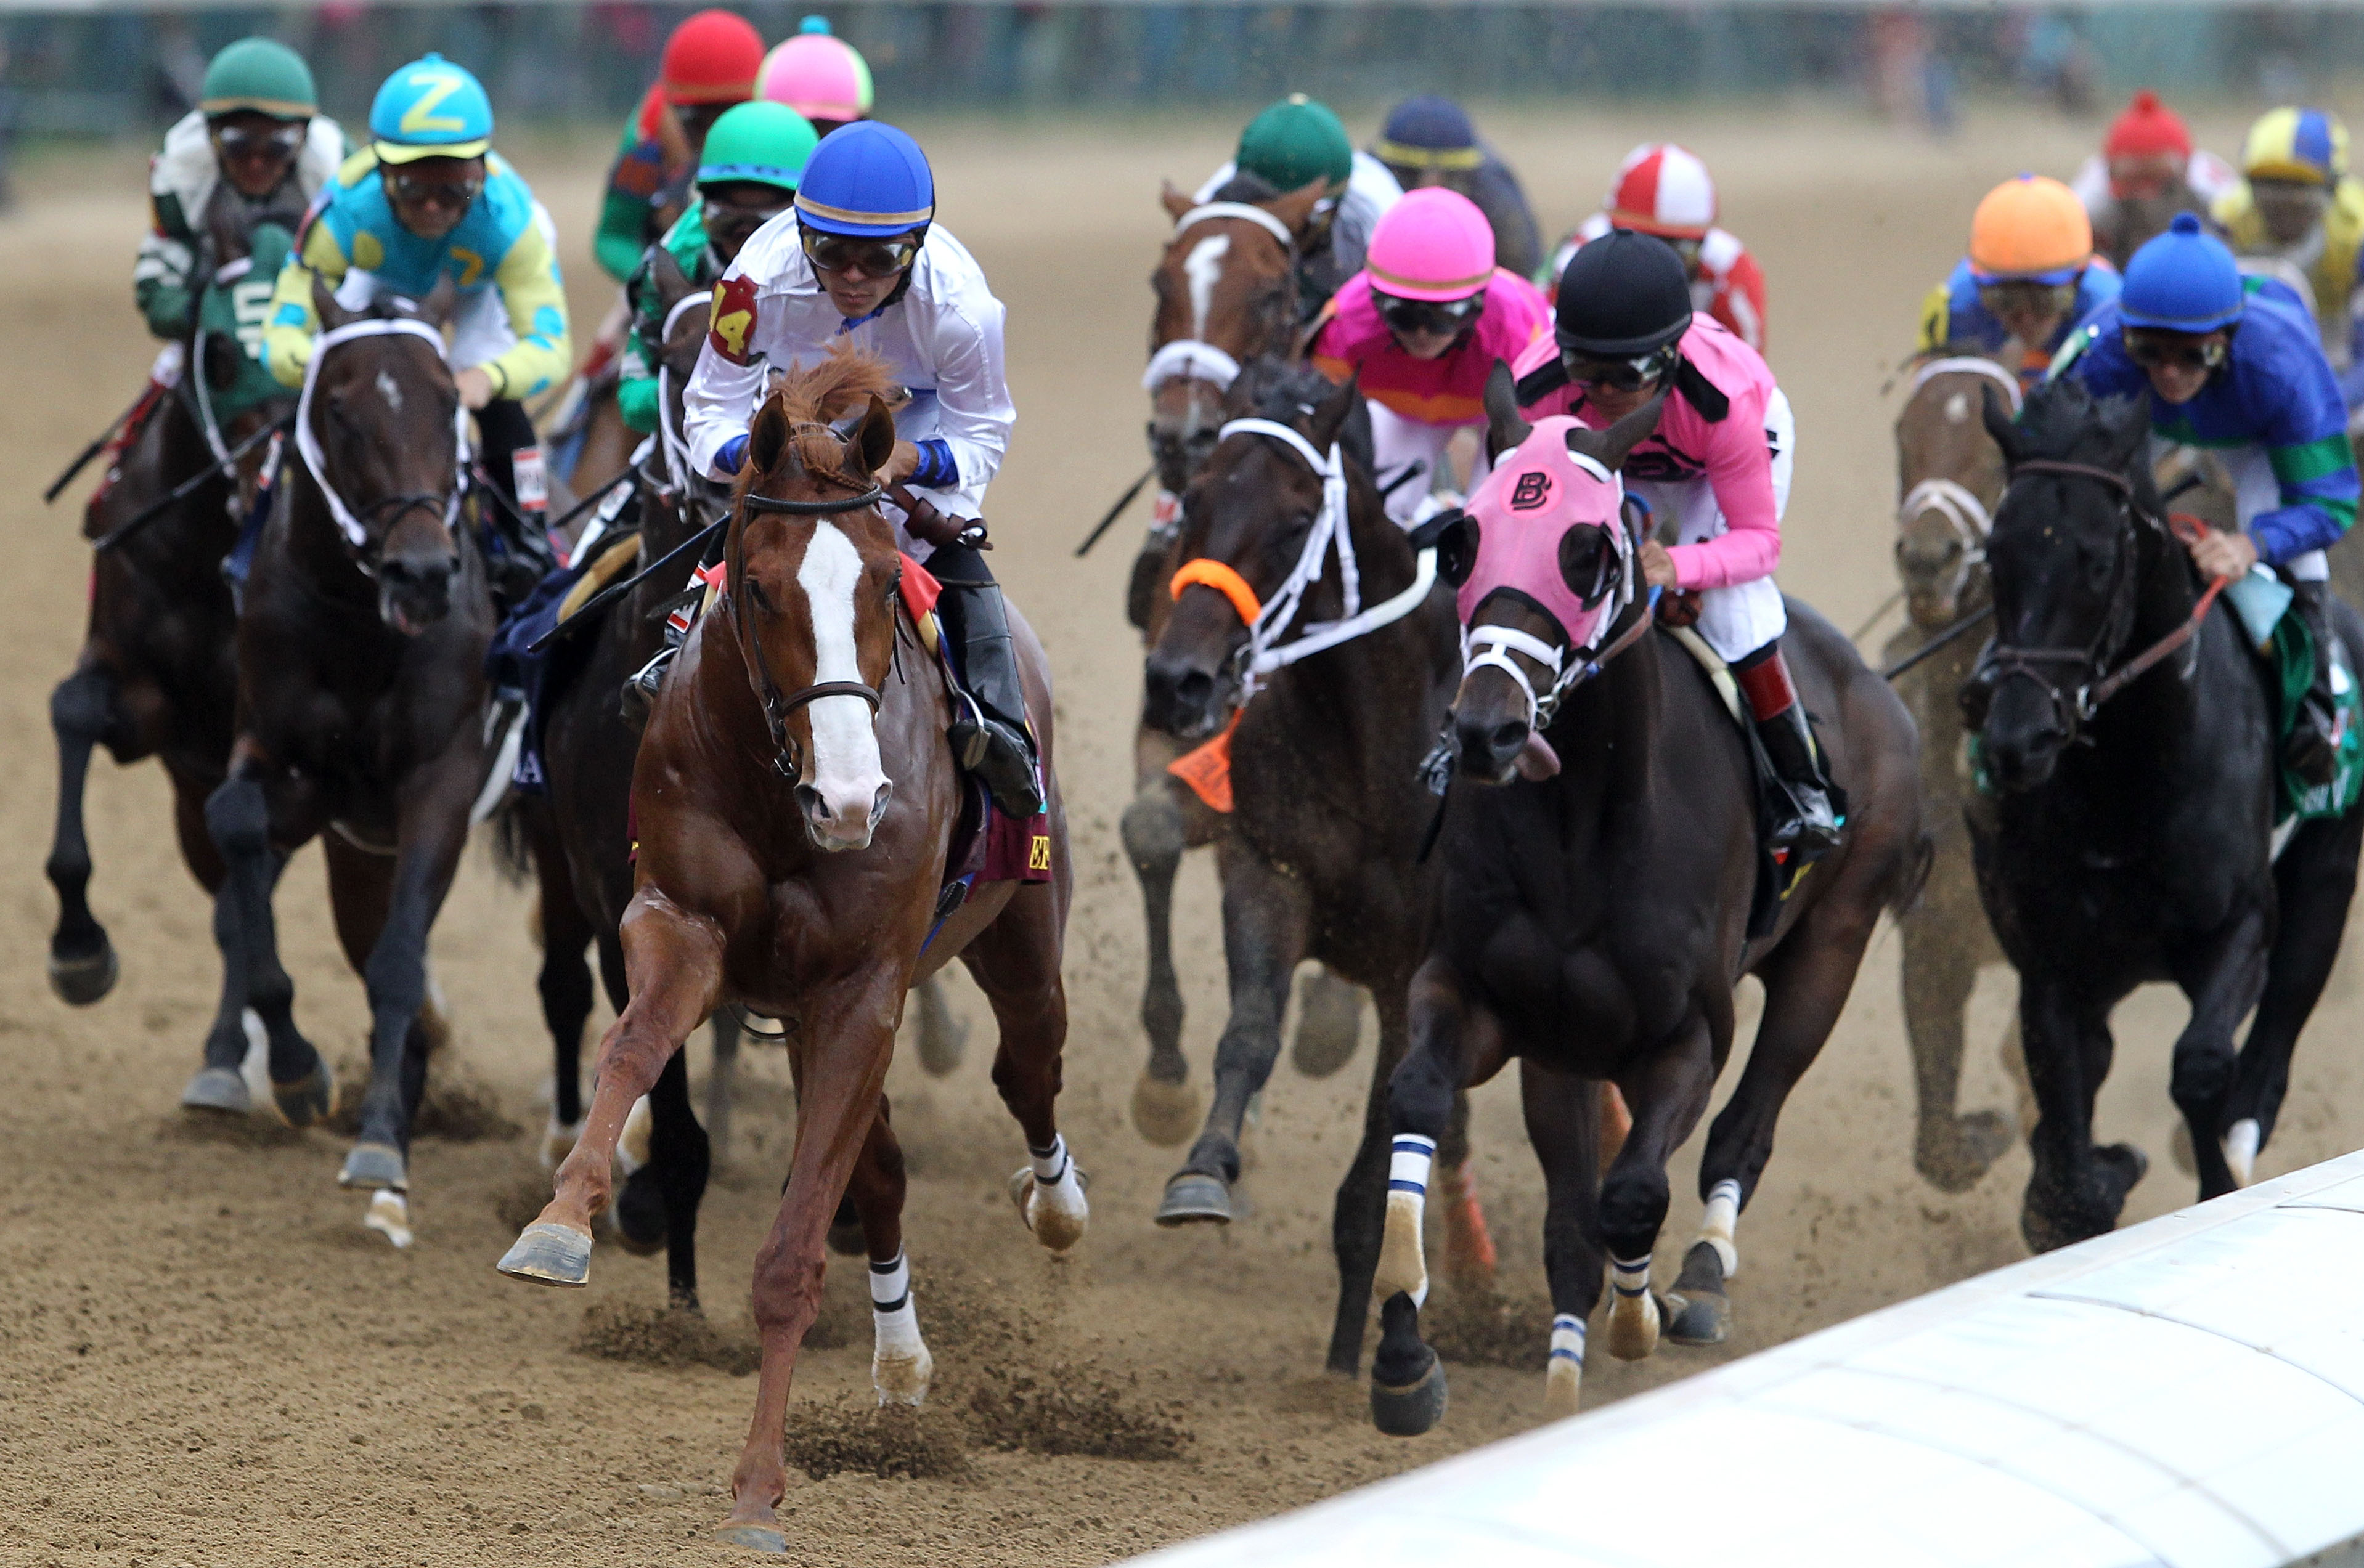 LOUISVILLE, KY - MAY 07:  Jockey Jesus L. Castanon (C), riding Shackleford #14, leads the field down the stretch at the start of the 137th Kentucky Derby at Churchill Downs on May 7, 2011 in Louisville, Kentucky.  (Photo by Matthew Stockman/Getty Images)